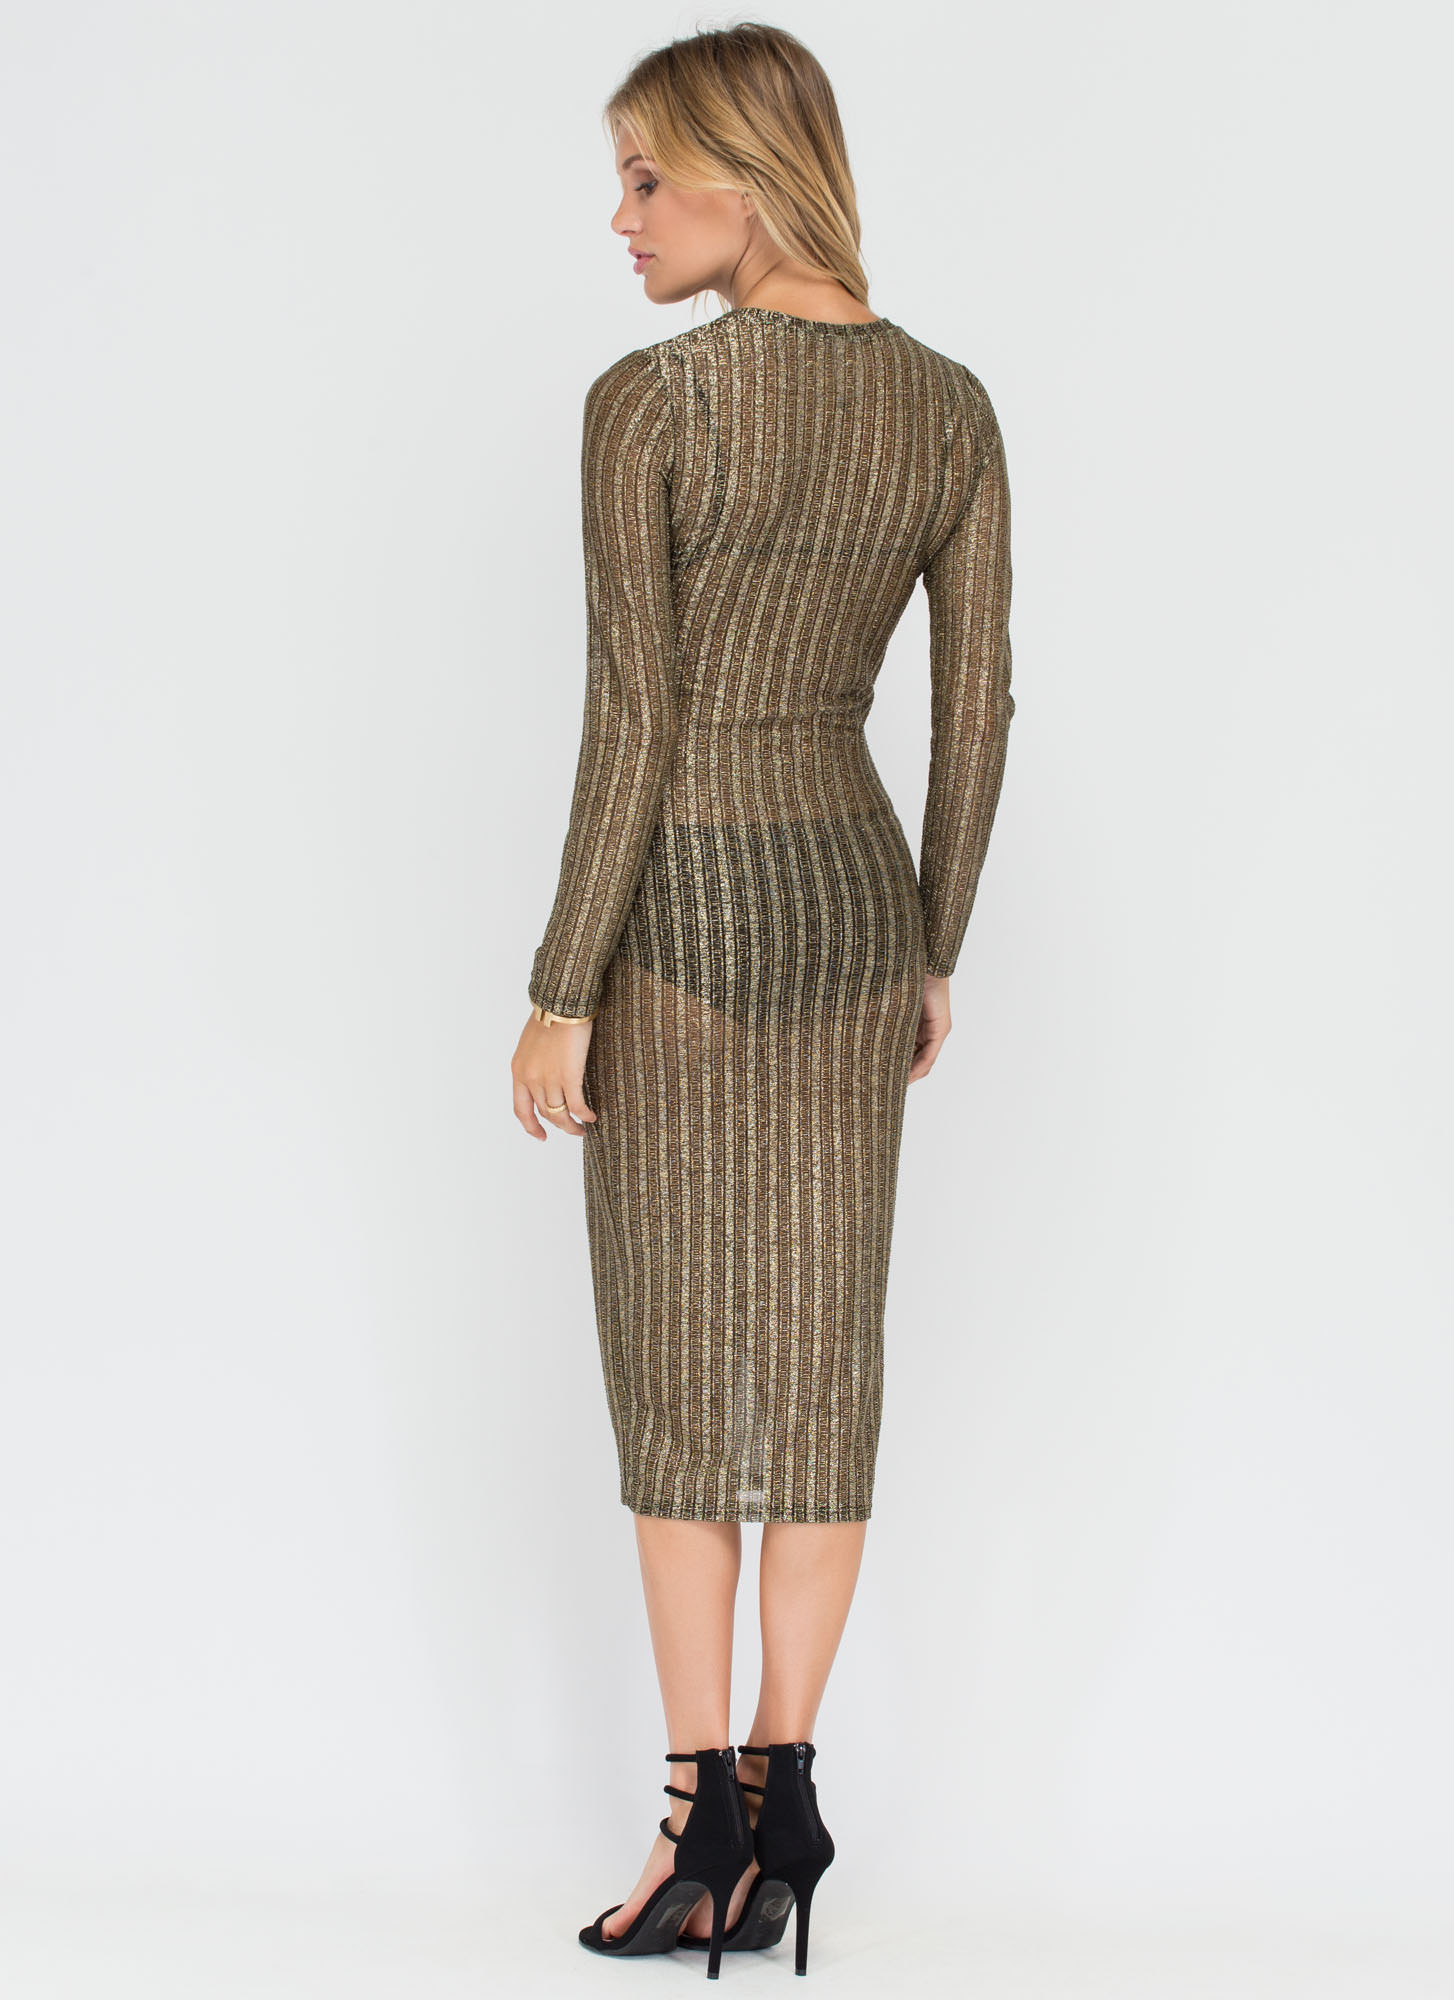 Out Of The Box Sheer Metallic Midi Dress GOLD (Final Sale)